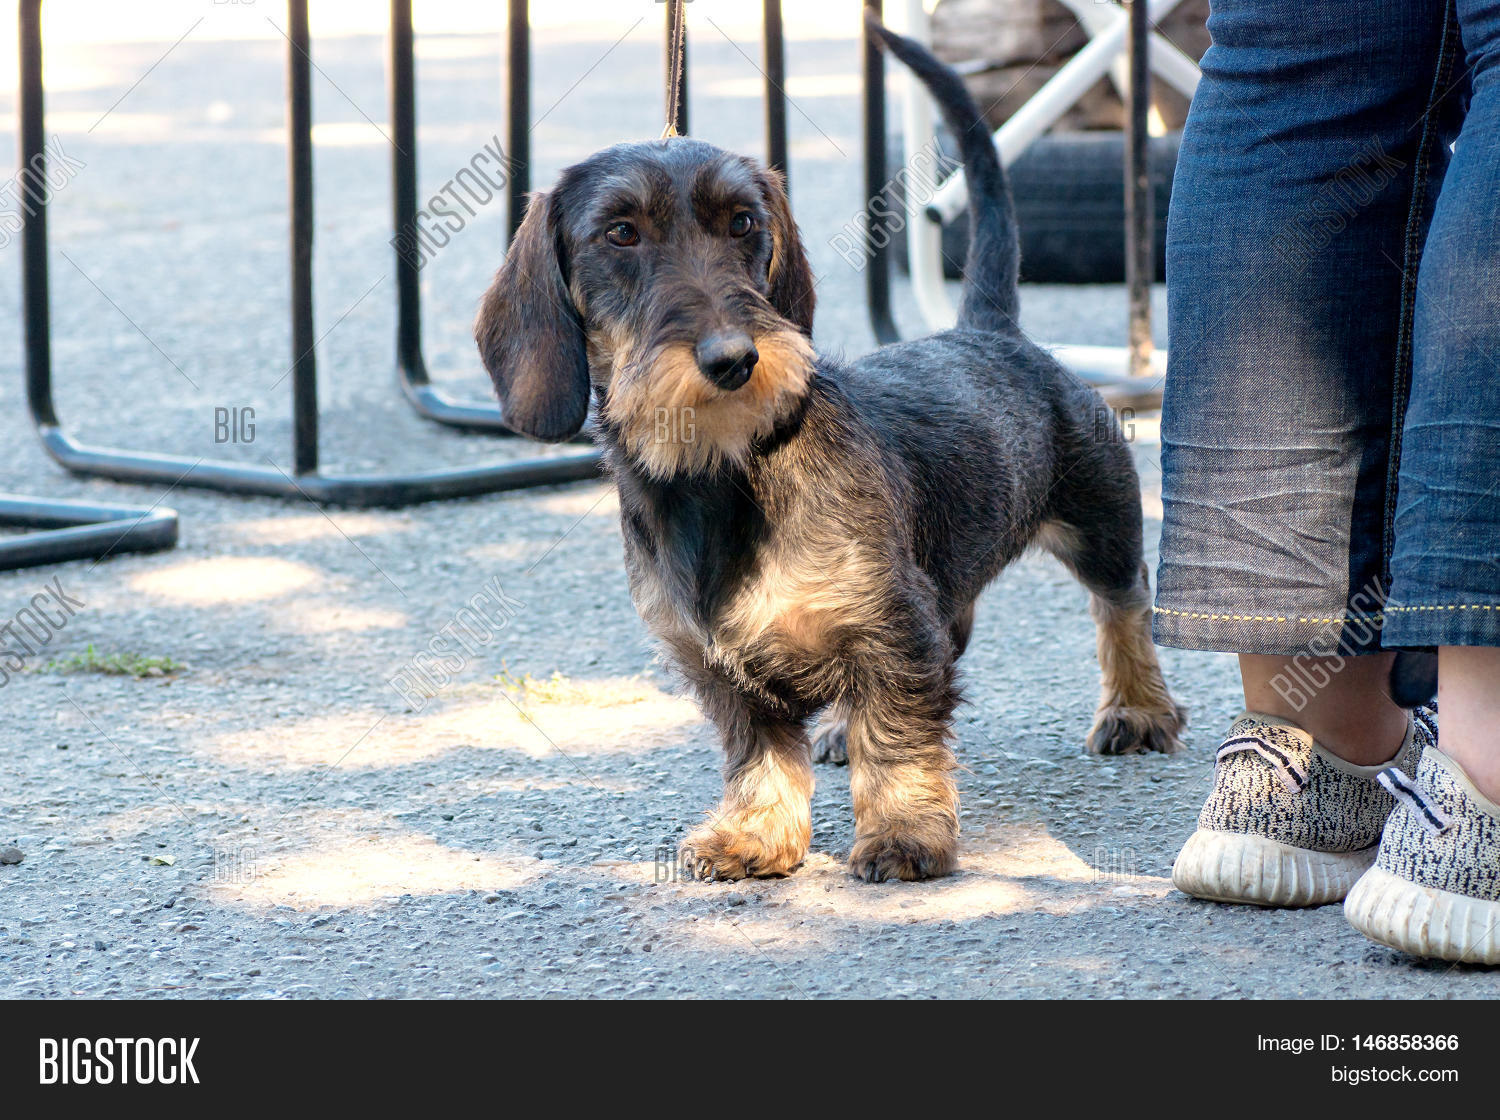 Dog - Wirehaired Image & Photo (Free Trial) | Bigstock